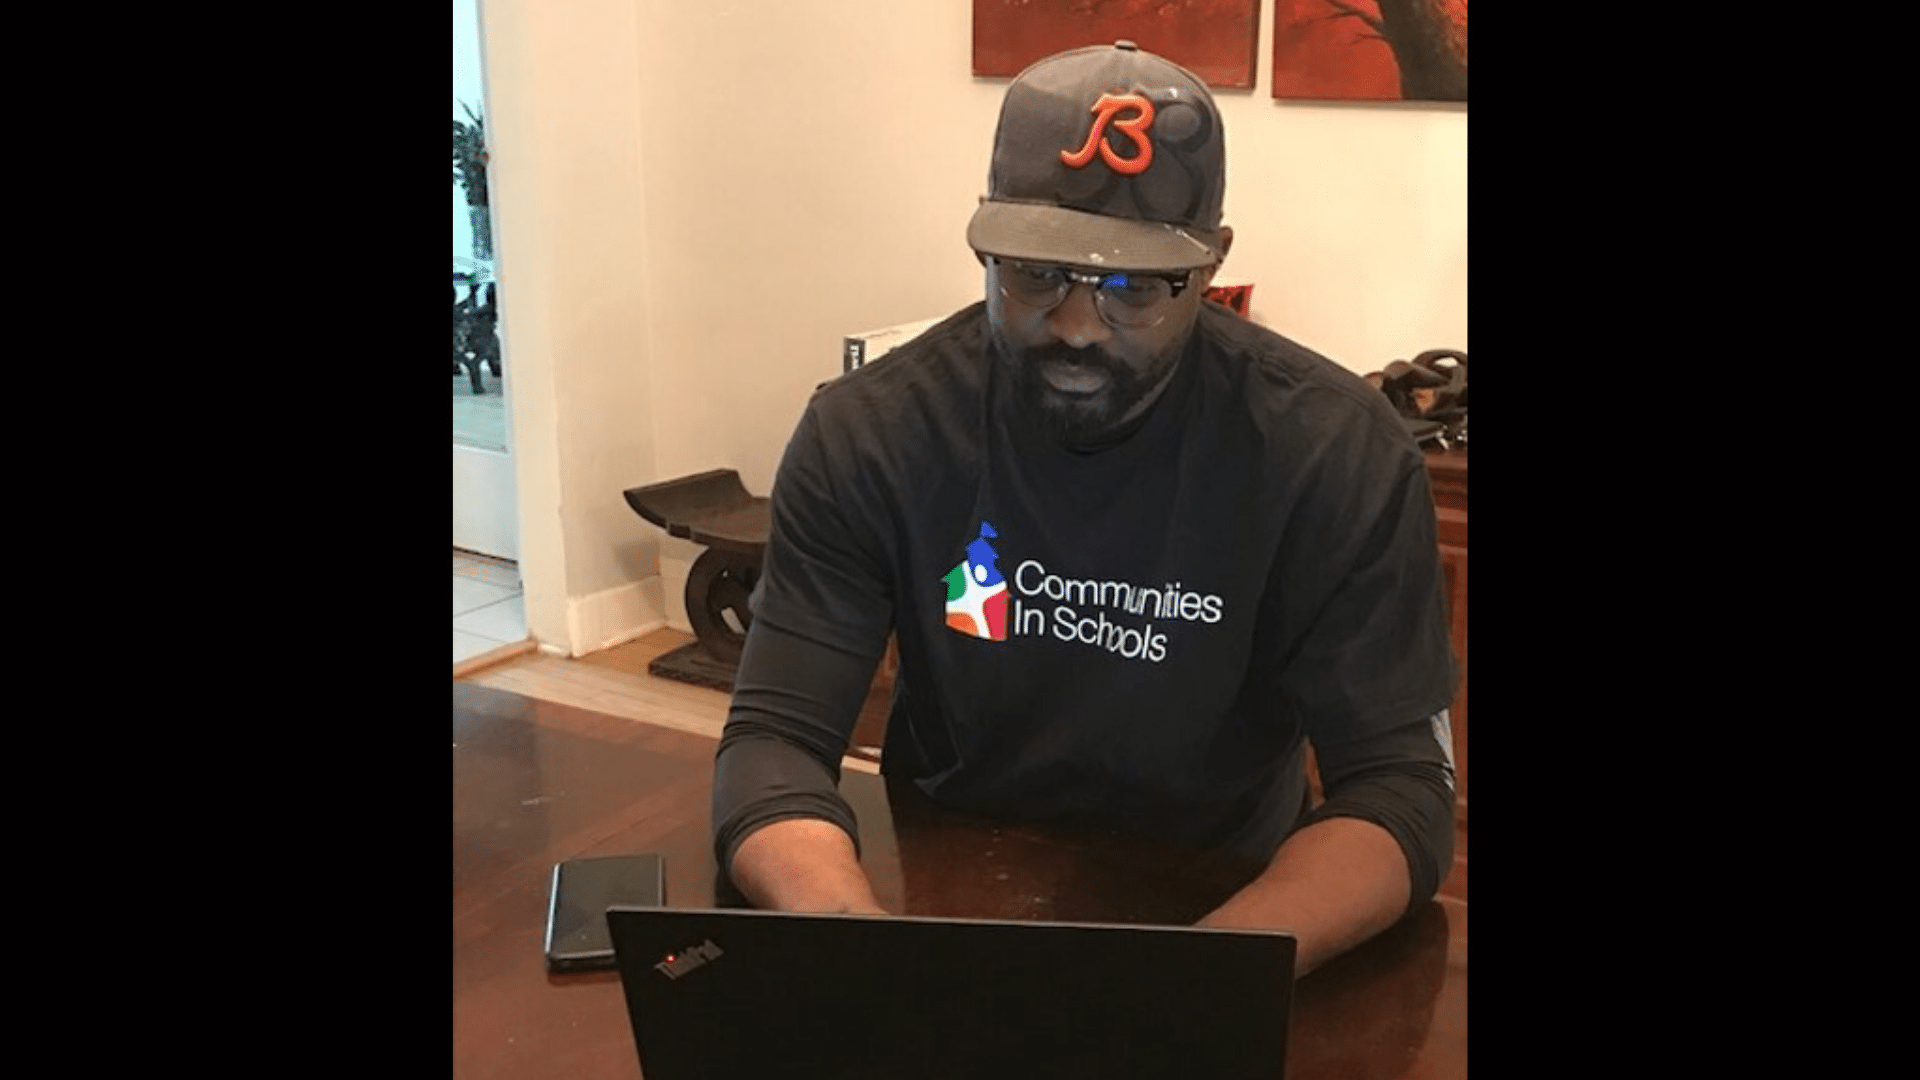 Lawndale News, September 10, 2020: CIS of Chicago Helps Students with Remote Learning